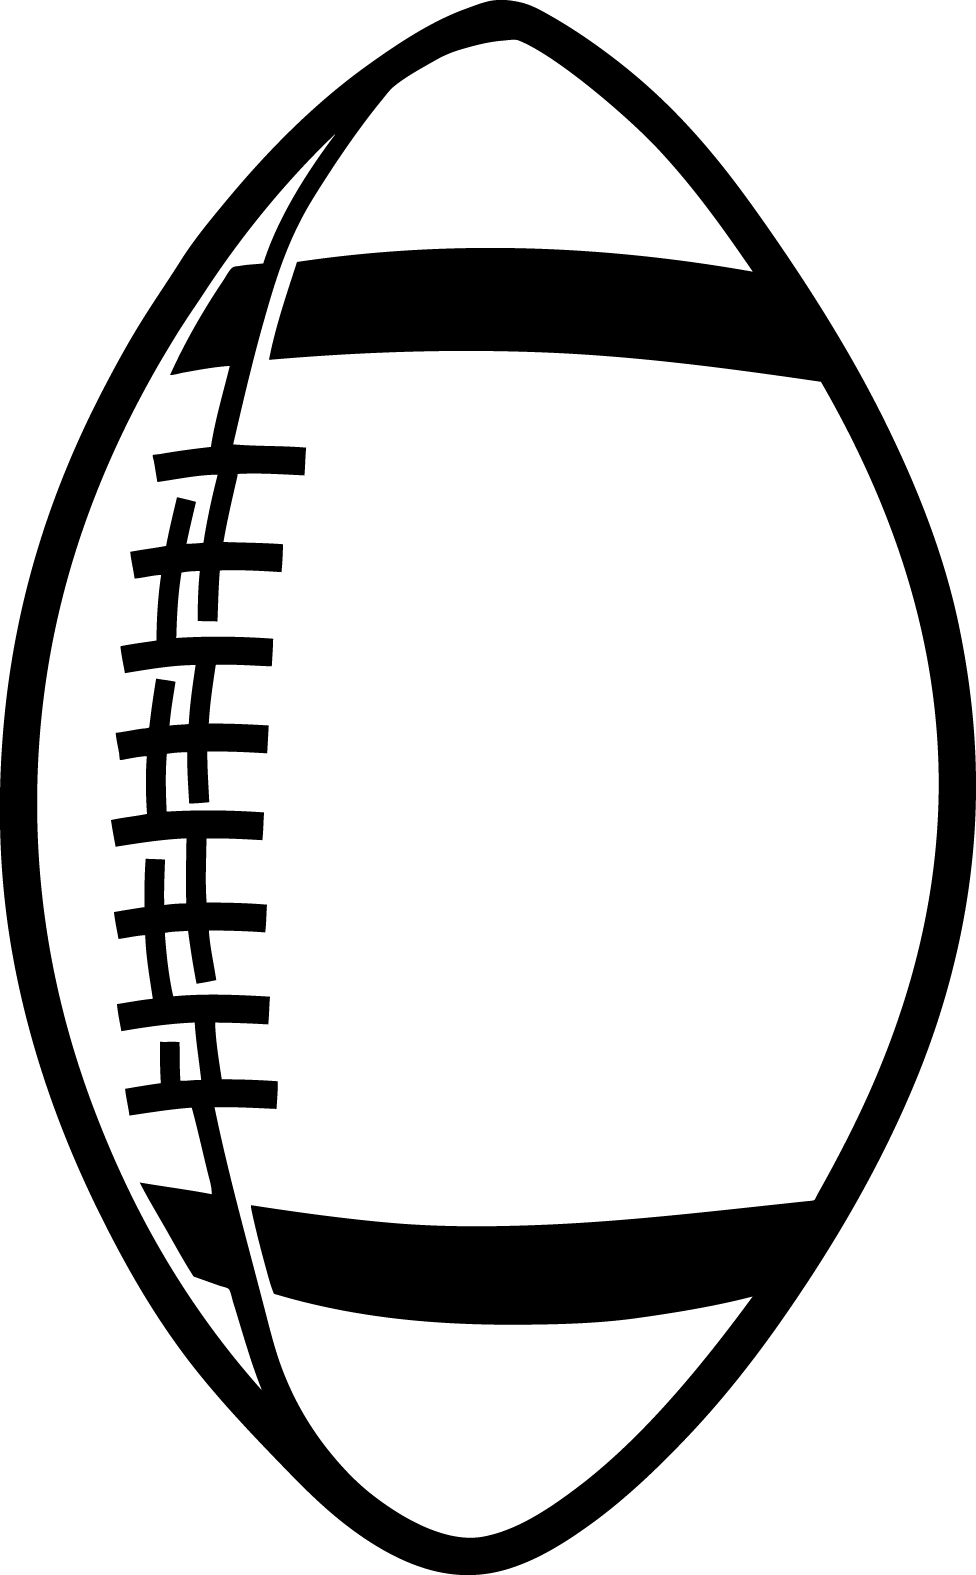 Football images free clipart. Dragonfly outline panda